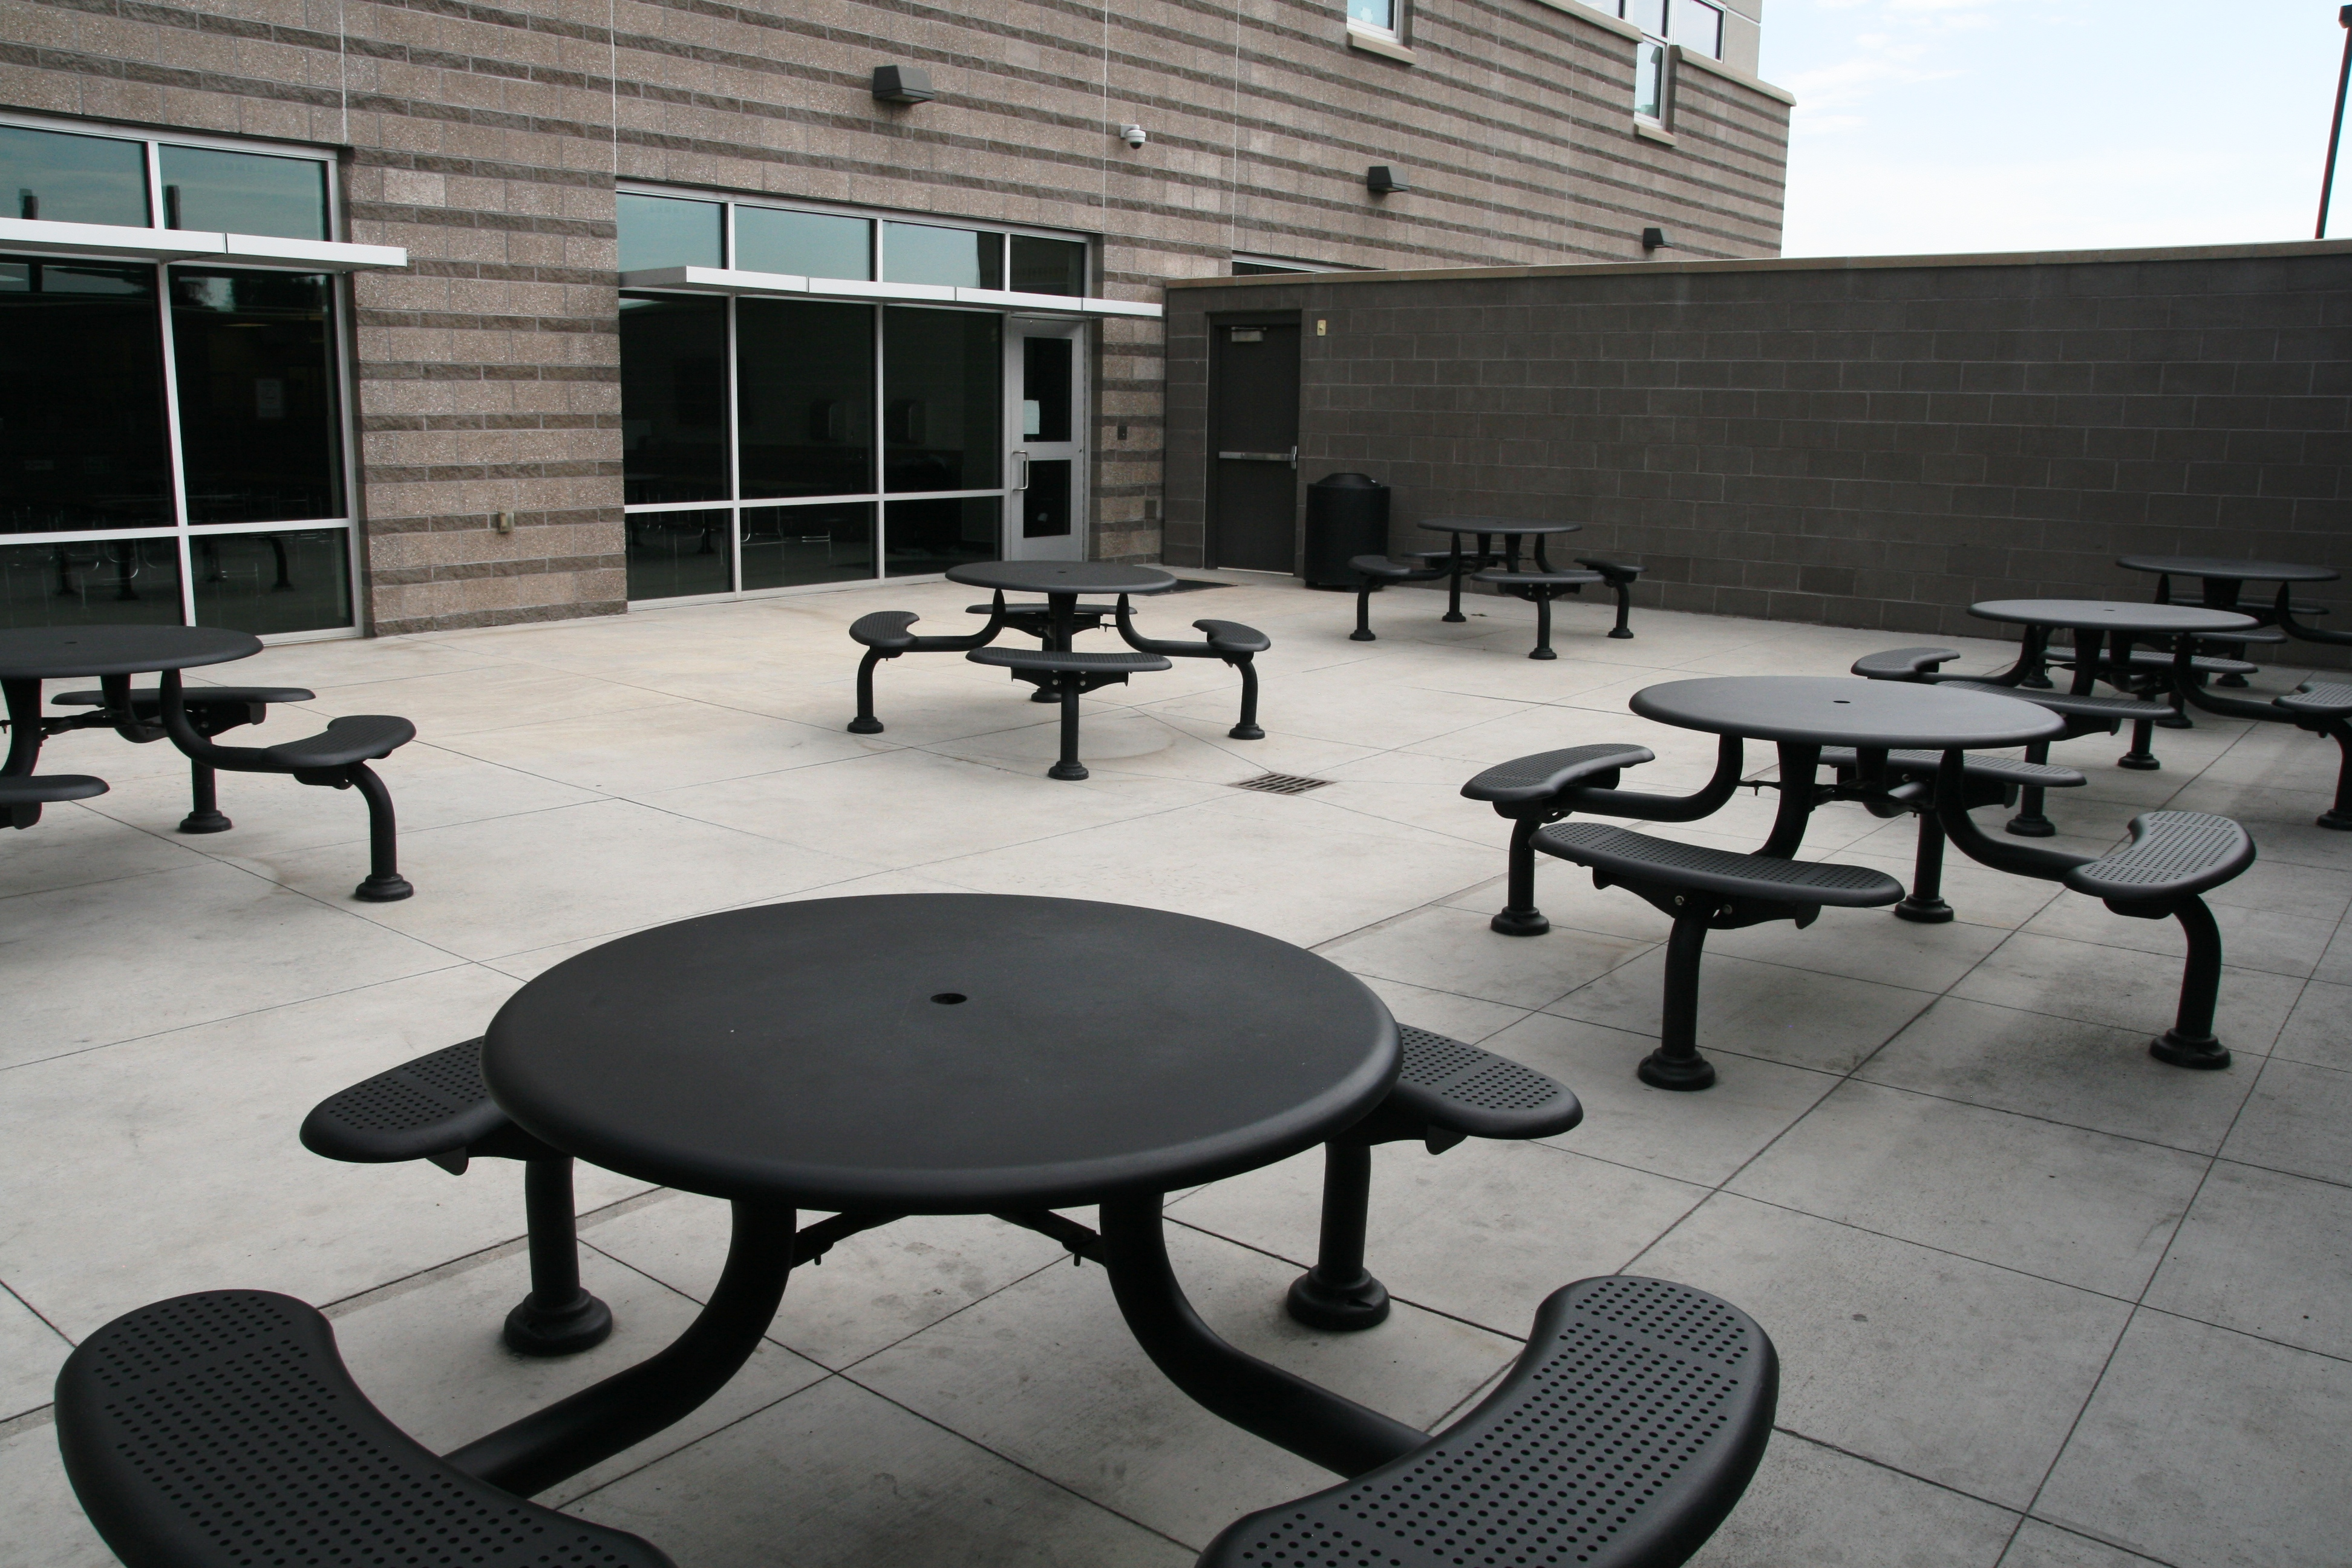 Dining Tables Image 5 Patio